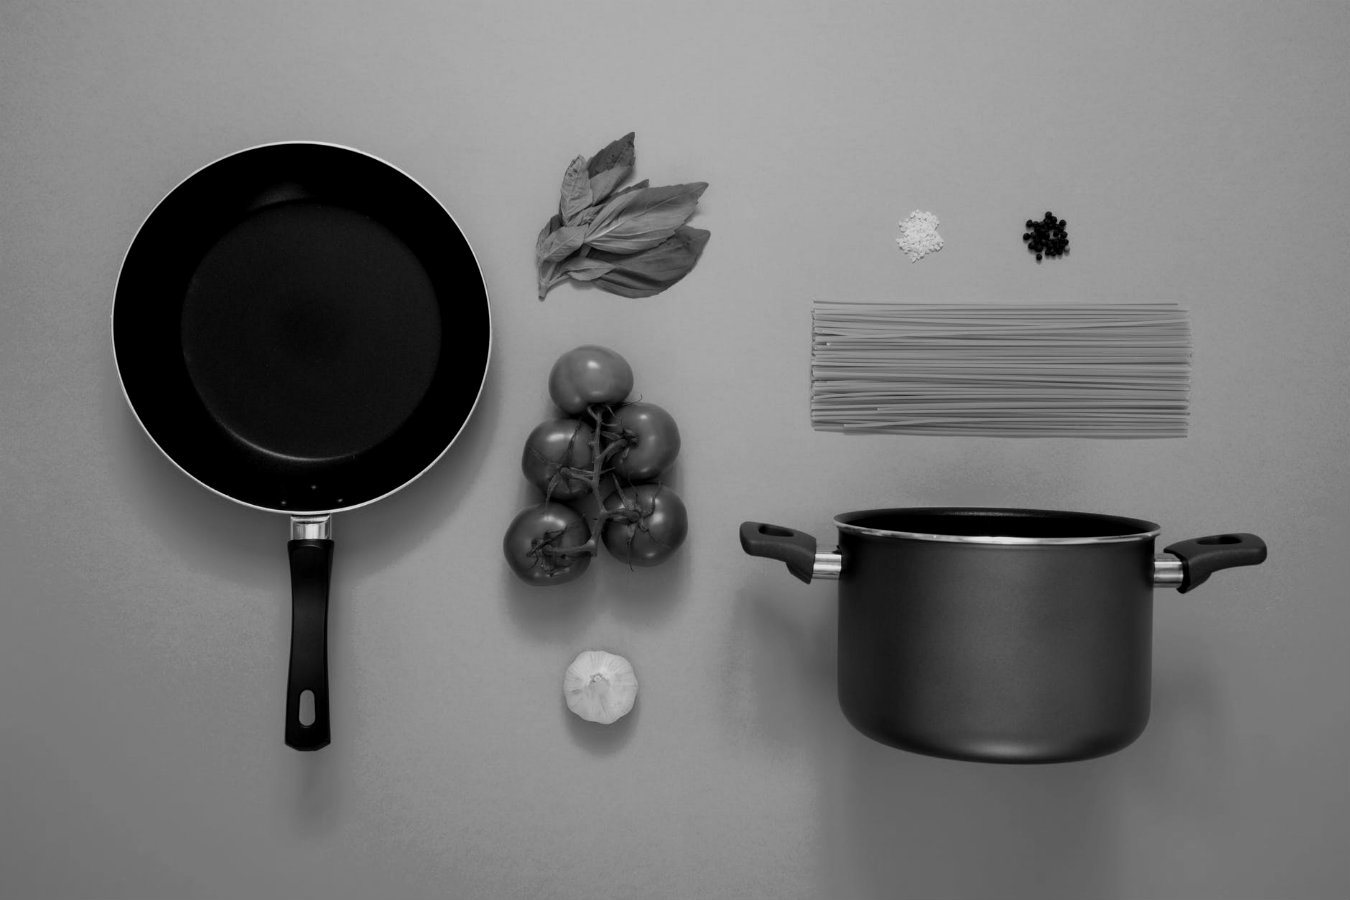 Pots And Pans -Metallic Hits And FX - A load of one shots, FX and textures from the sound of hitting pots and pans with a wooden spoon.12th April 2019